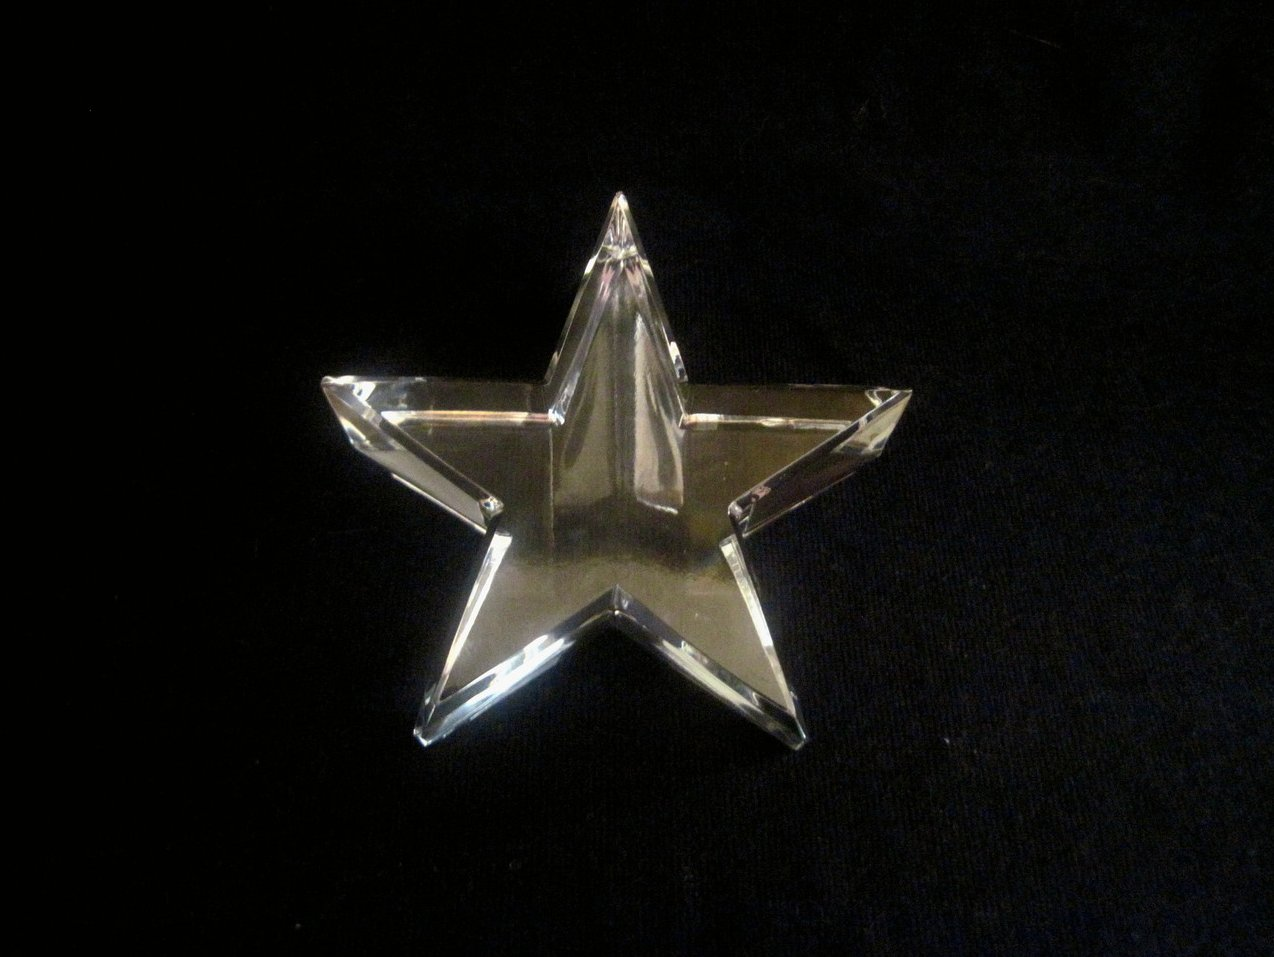 Image 2 of Optical Crystal Star Paperweight Elegant Cut Nordstrom